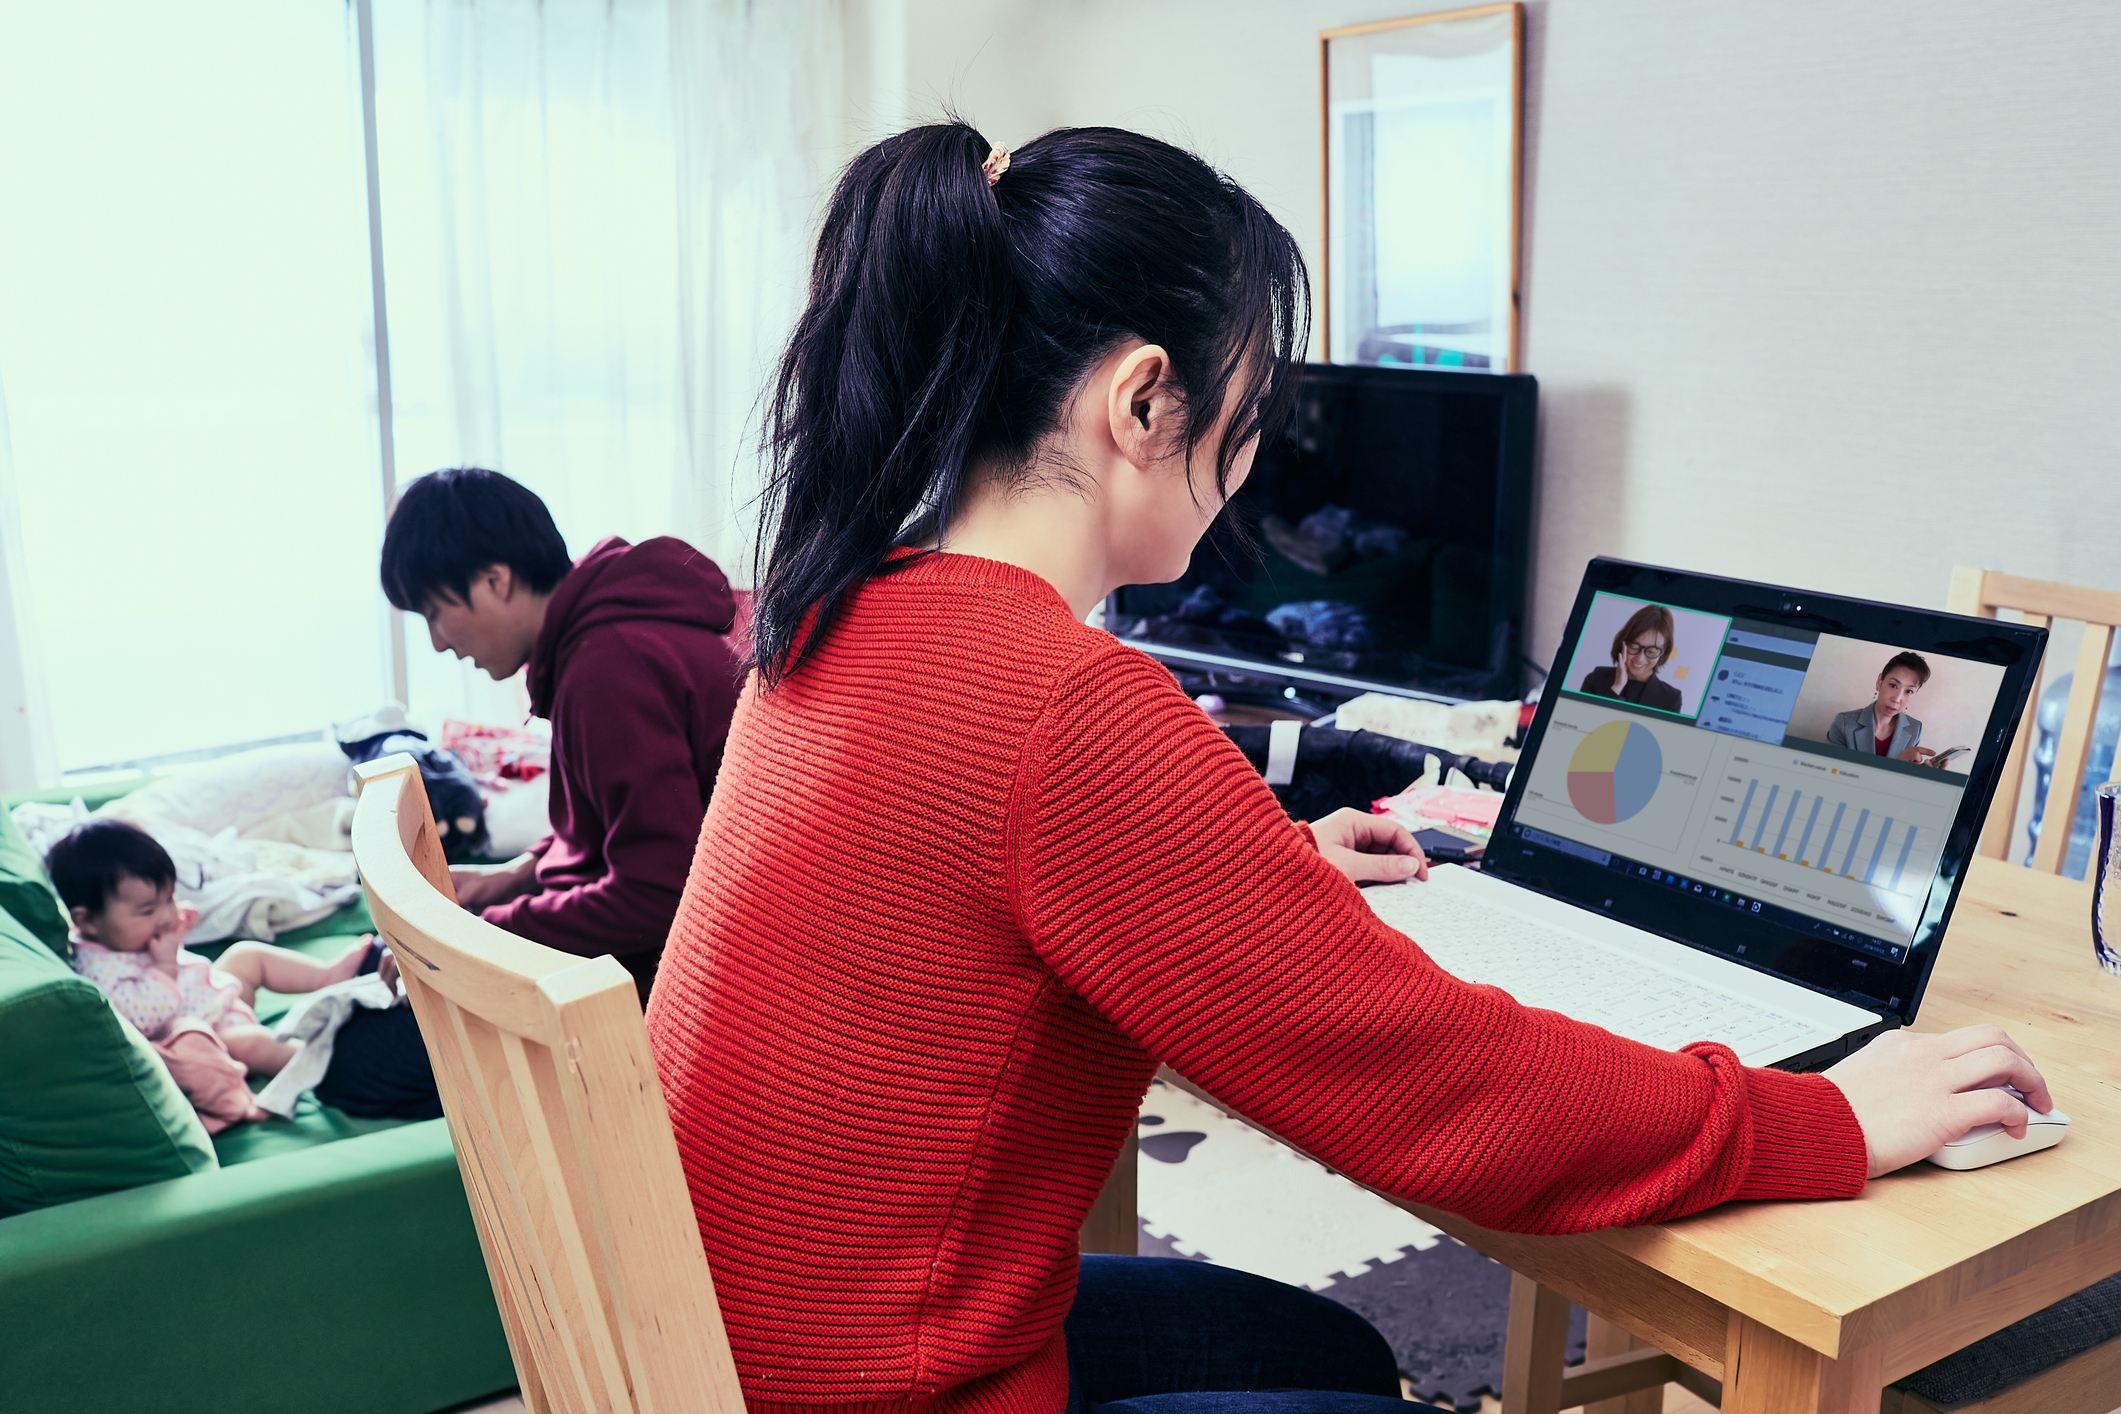 Woman on a video call with family in the background